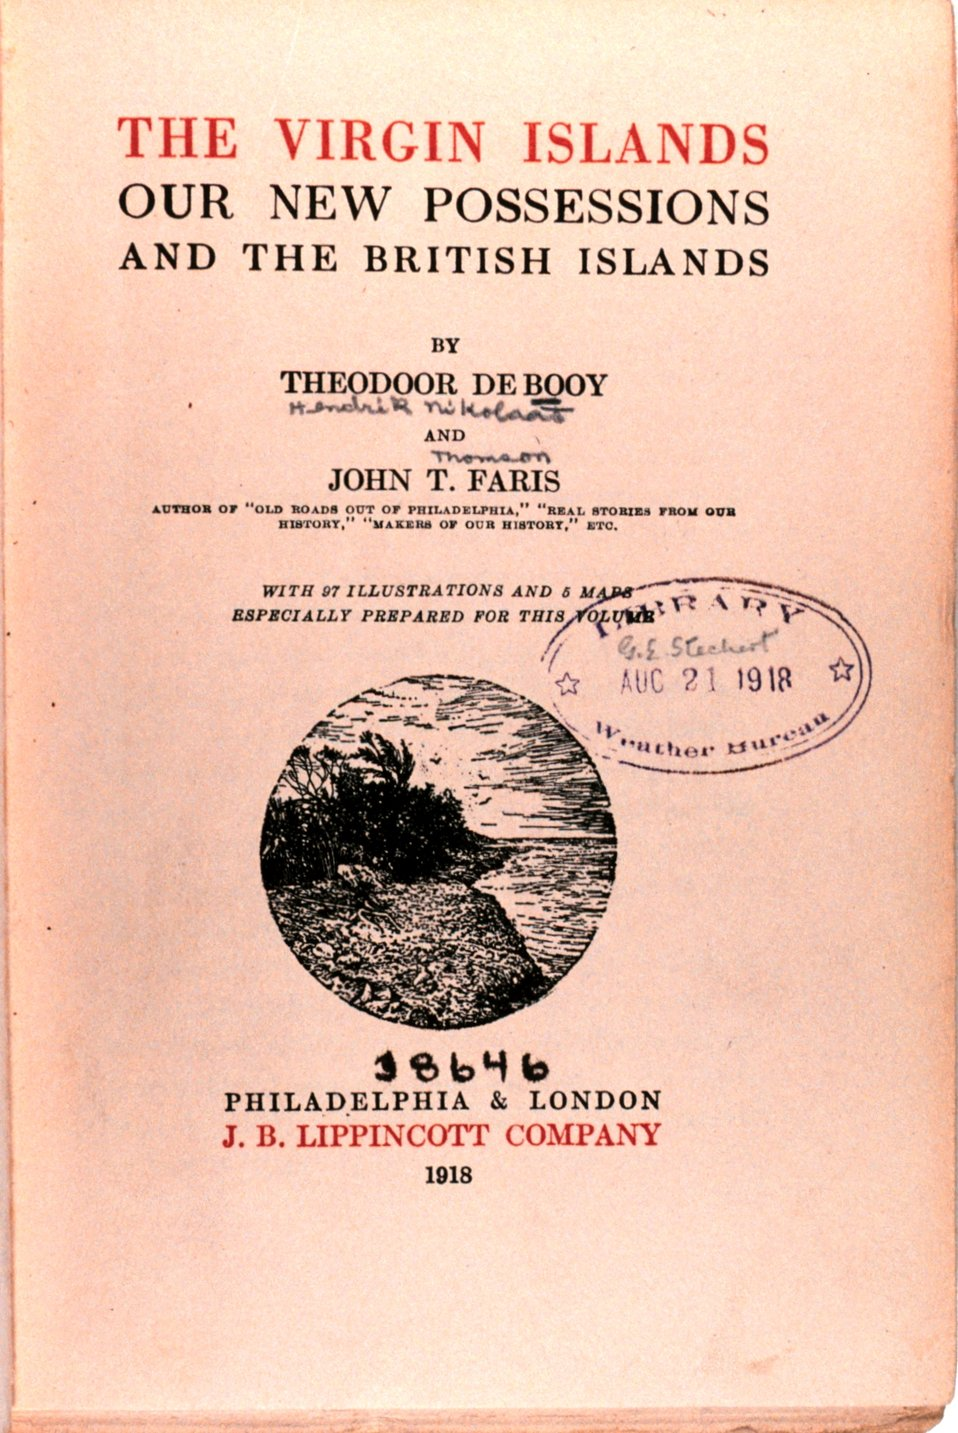 Title page: 'The Virgin Islands Our New Possessions and the British Islands', by Theodoor De Booy and John T. Faris, 1918.  J. B. Lippincott and Company, Philadelphia.  Library Call Number C/hc100 V81 B.